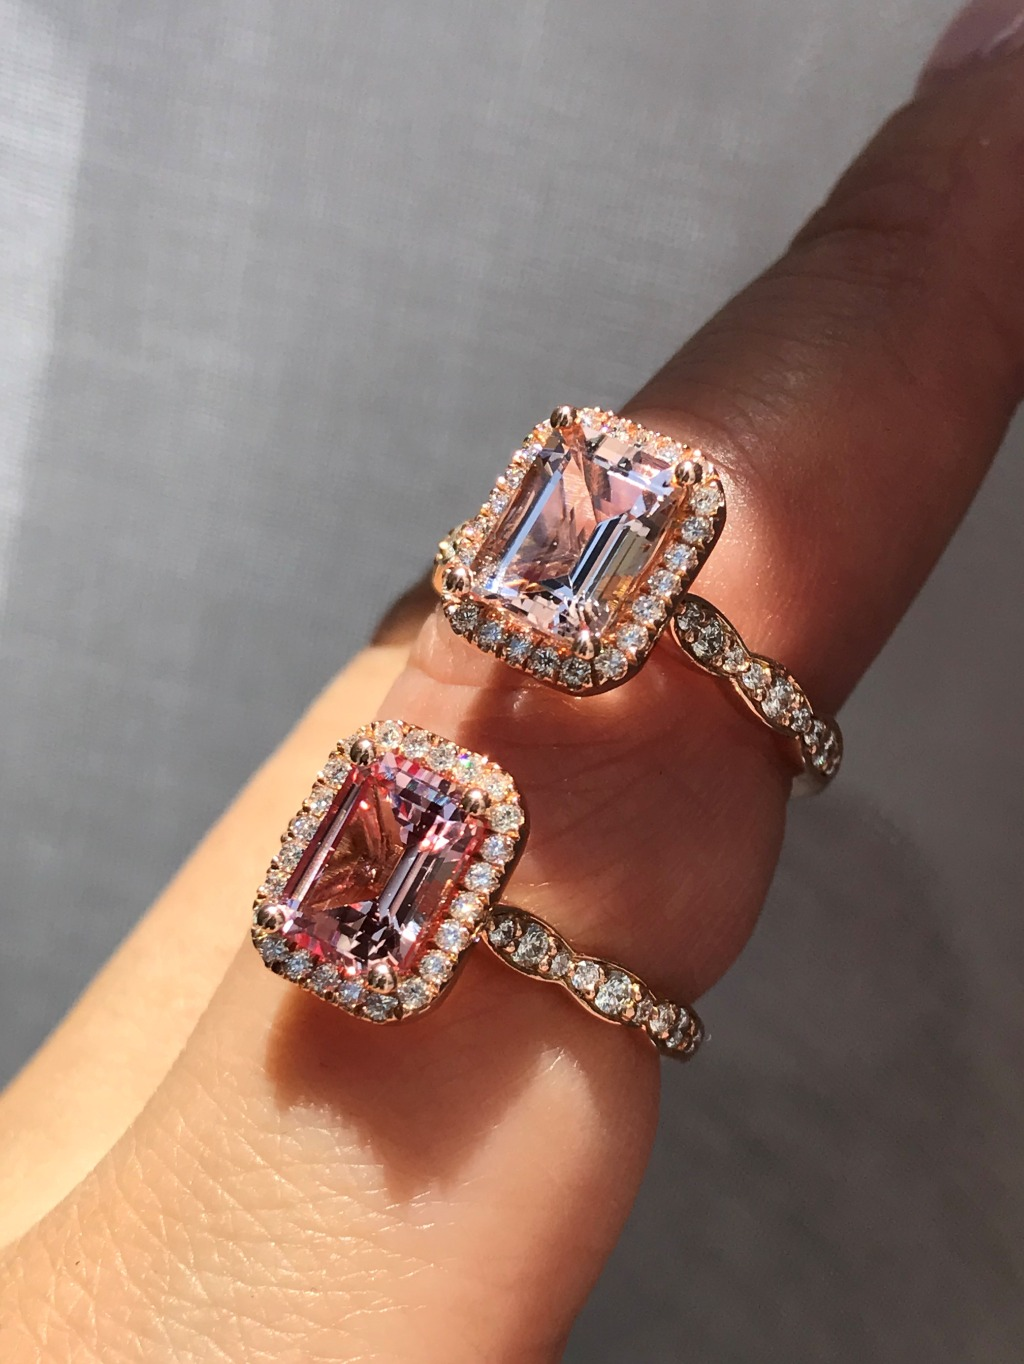 Our newest Emerald Cut additions! Morganite on top, and Champagne Peach Sapphire below, both in scalloped diamond band in Rose Gold